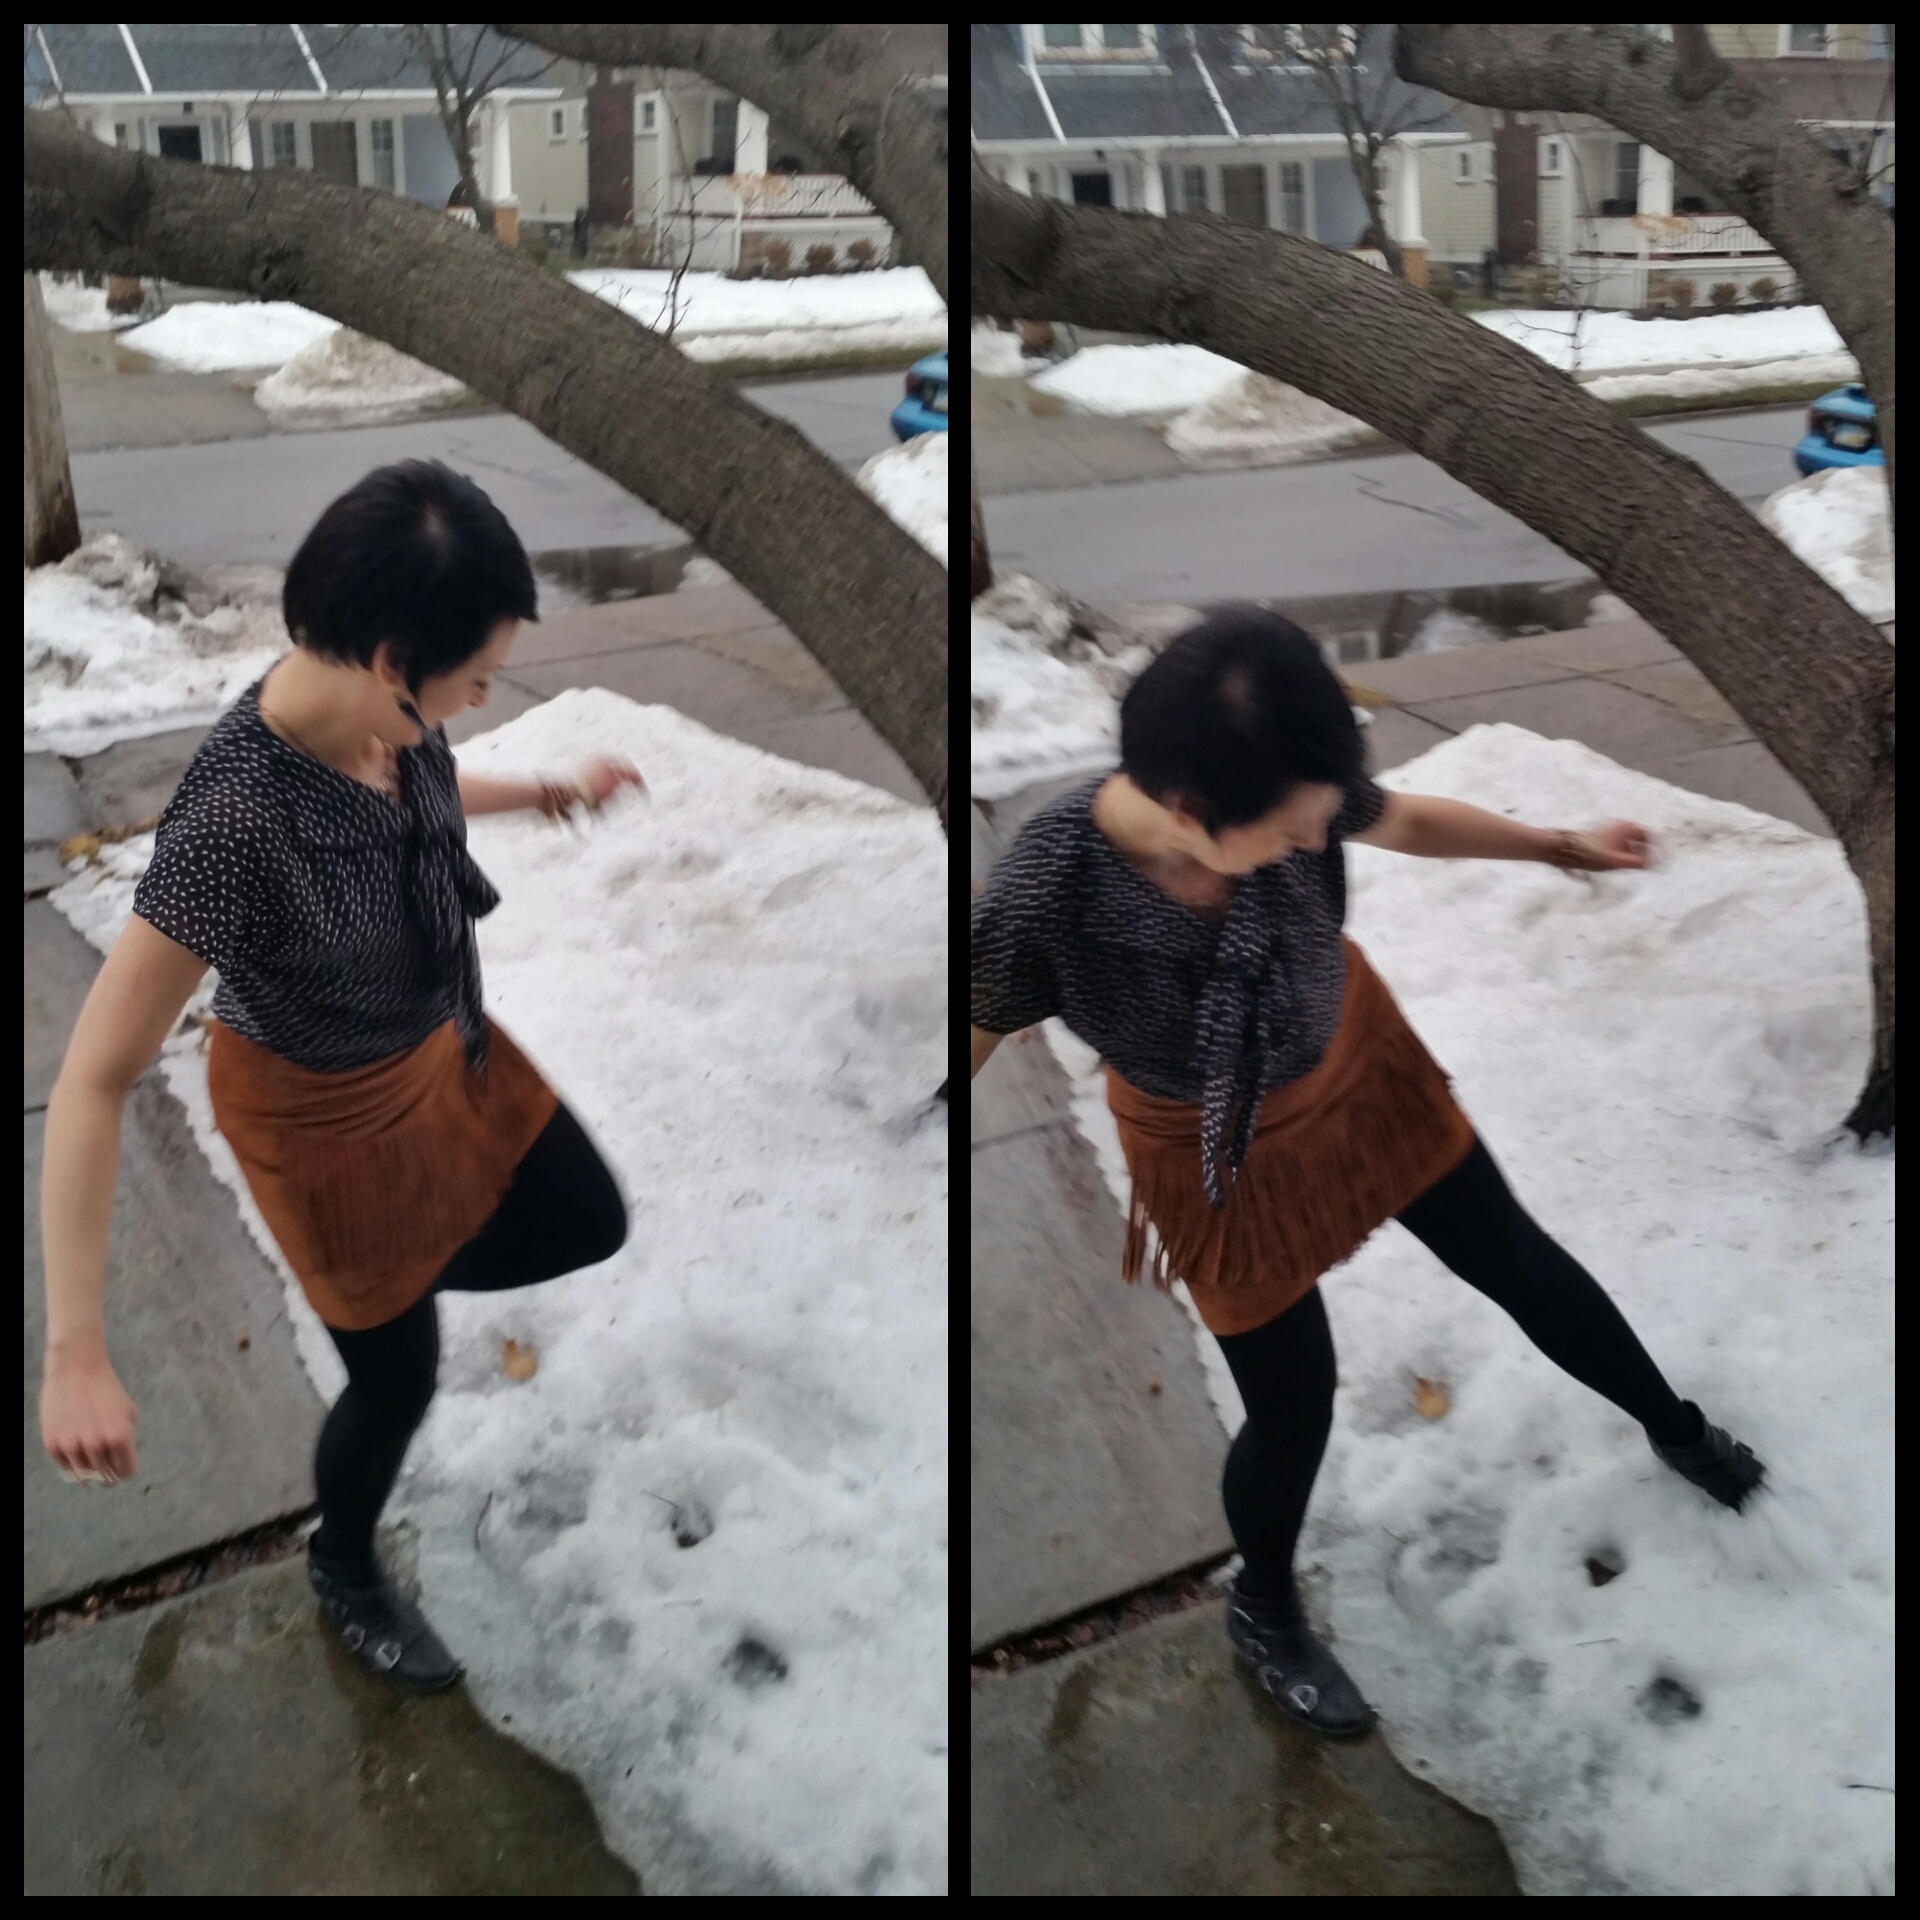 Here's me kicking the shit out of the snow: DIE SNOW DIE!!!